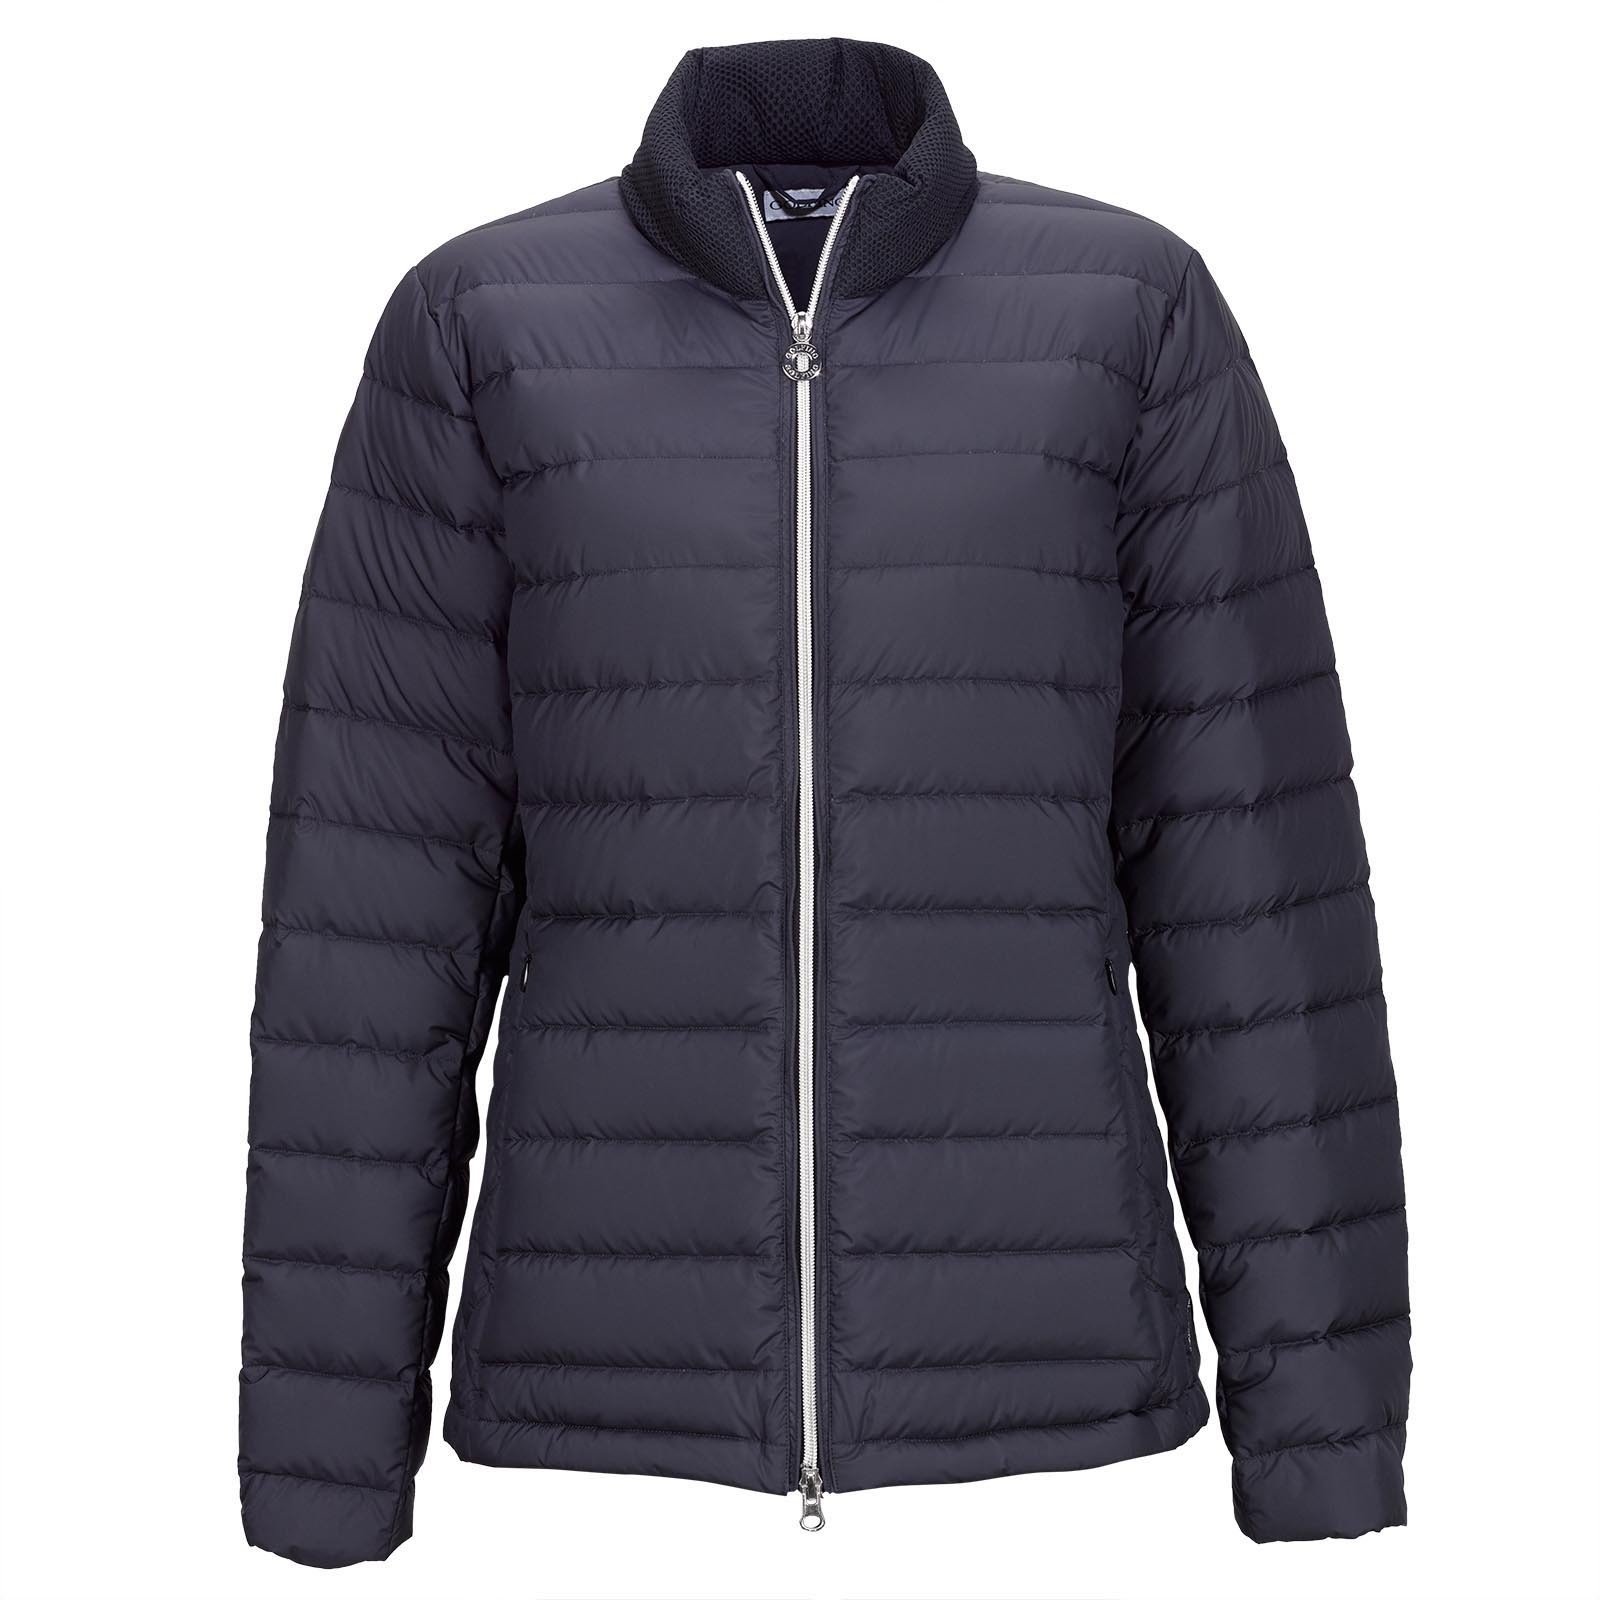 Damen Steppjacke Cold Protection mit leichtem Daunen-Futter